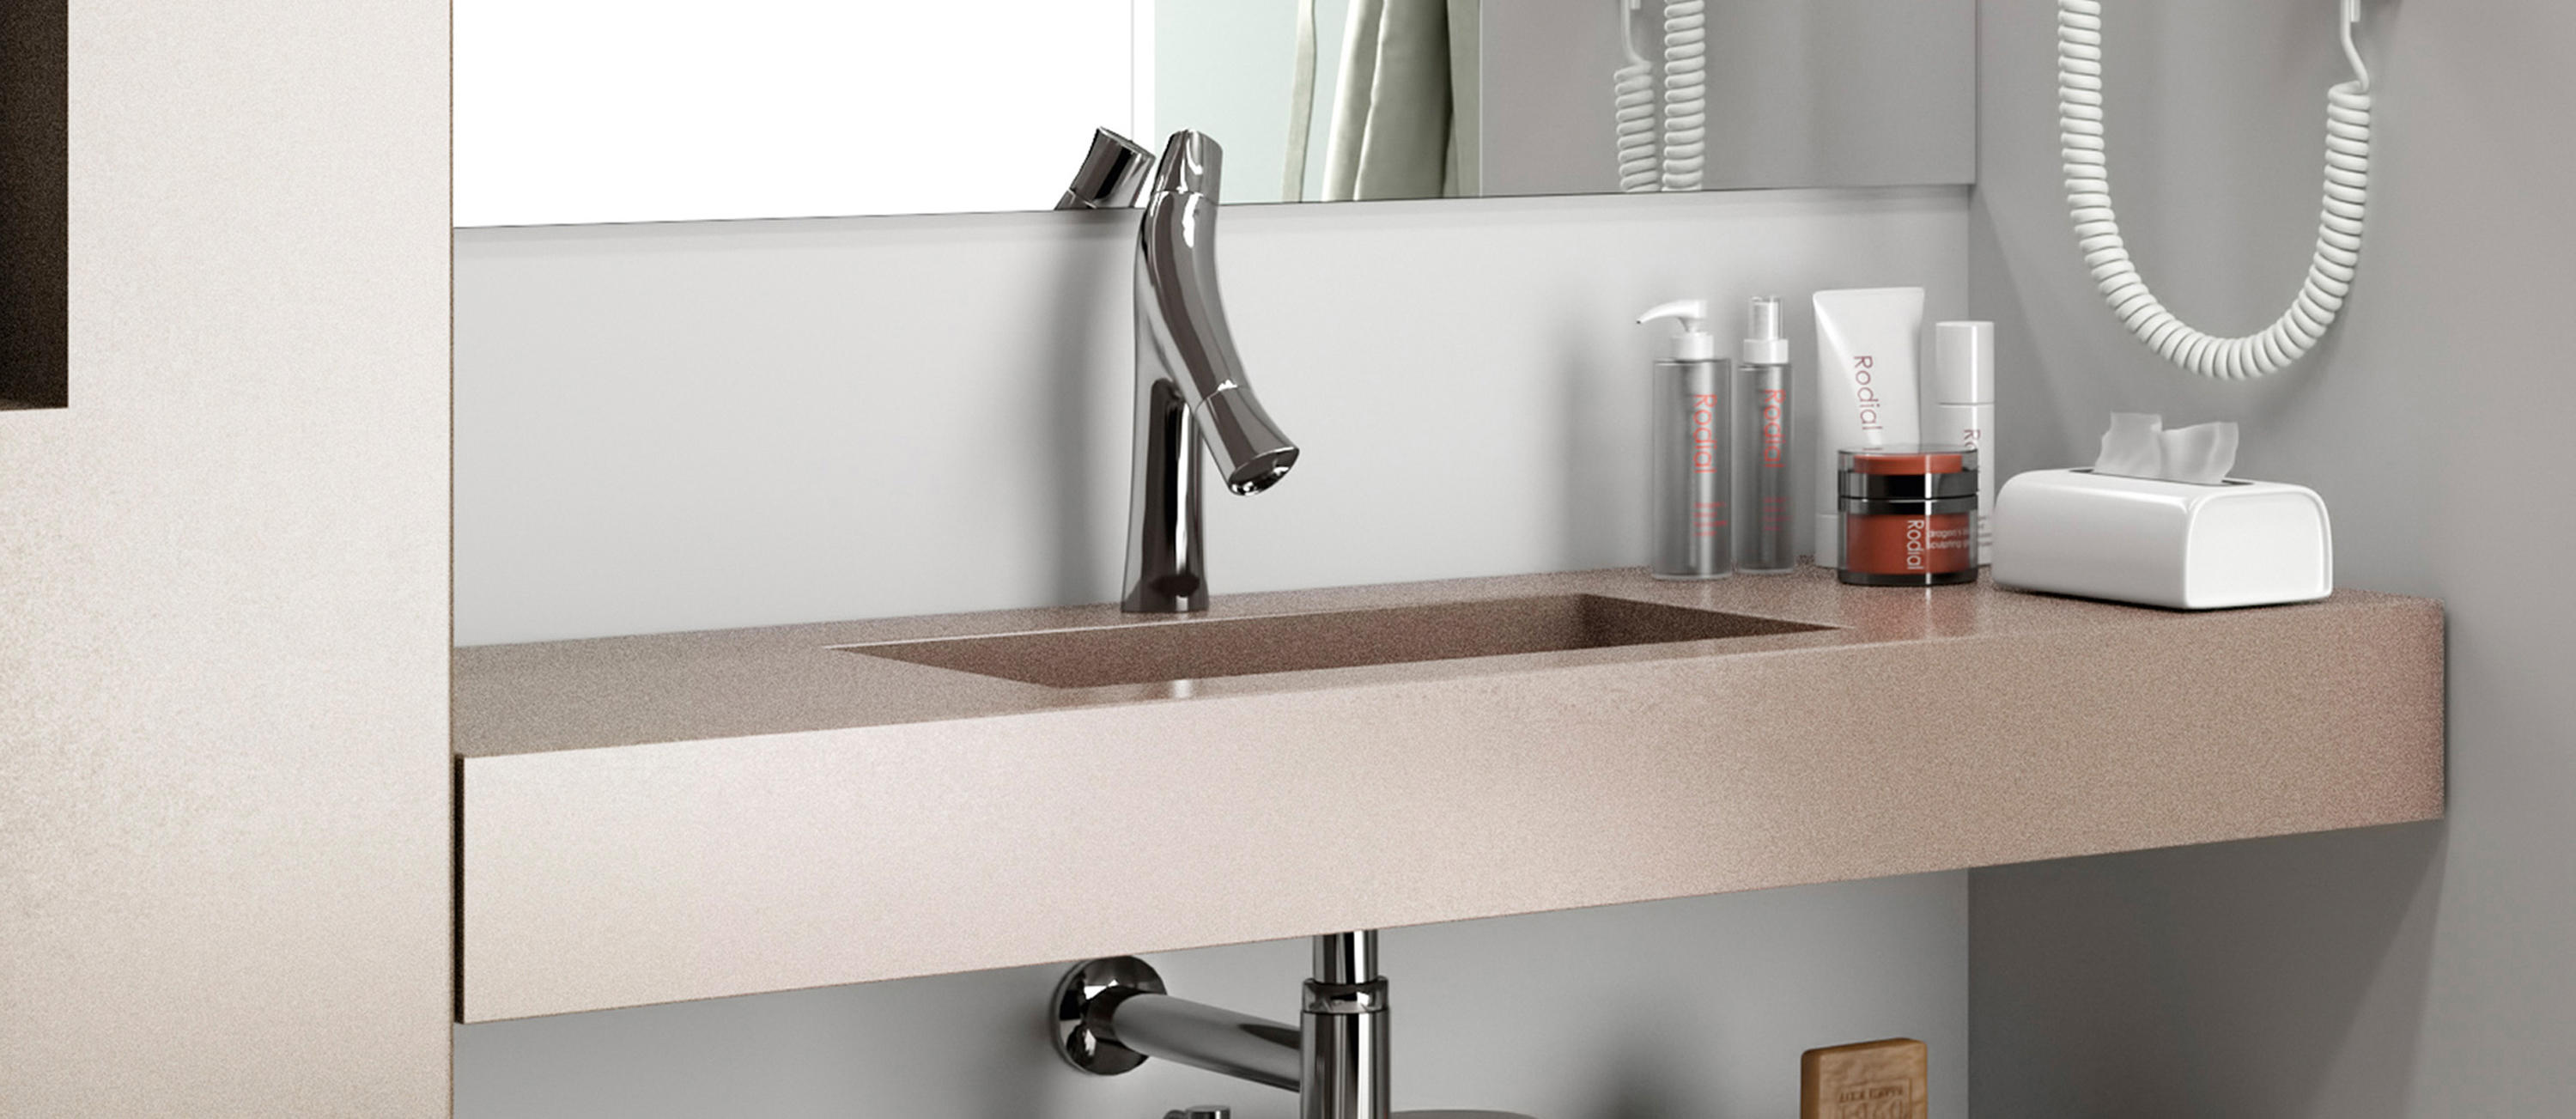 silestone bathroom countertops. Ambient Images Silestone Bathroom Countertops R